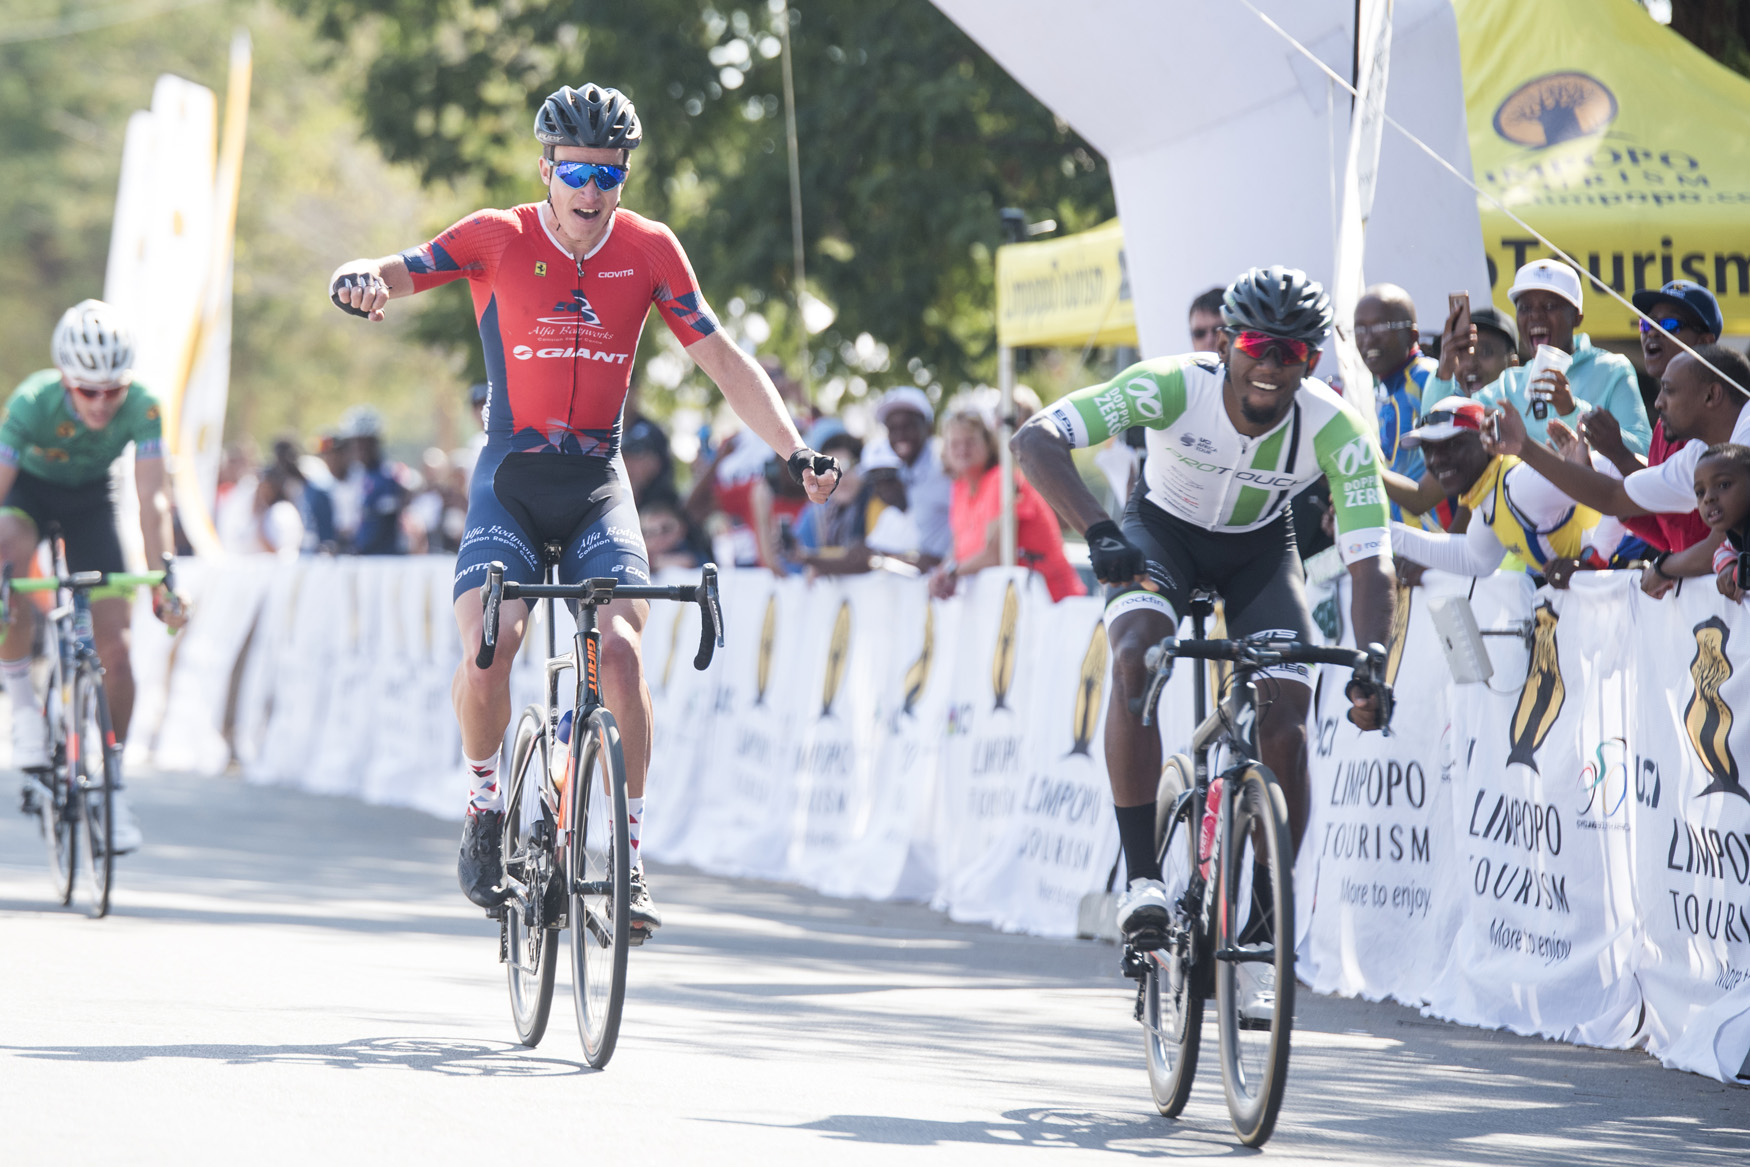 ProTouch Continental's Clint Hendricks hammers his handlebar in jubilation as Hendrik Kruger (Alfa Bodyworks Giant) realises his defeat at the end of the stage from Tzaneen to Peter Mokaba Stadium, Polokwane, on Stage 4 of the 2019 Tour de Limpopo (UCI 2.2) from 14-18 May © Tour de Limpopo/Andrew Mc Fadden